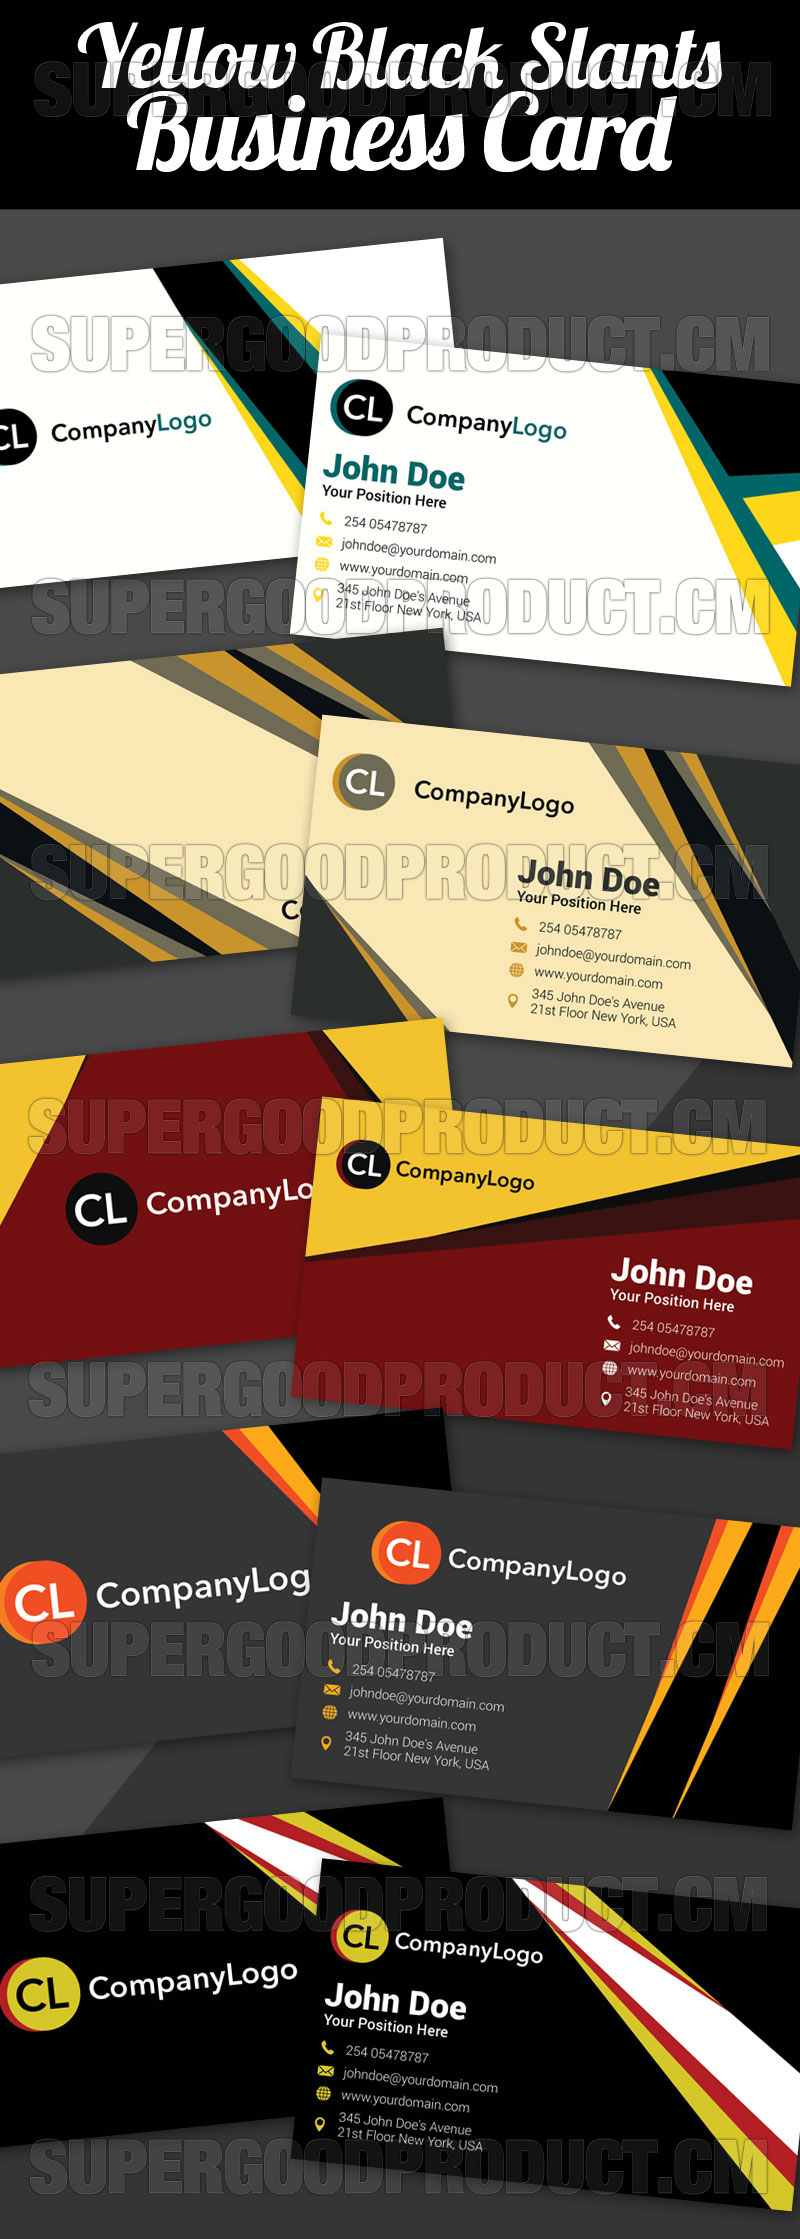 Yellow-Black-Slants-Business-Cards